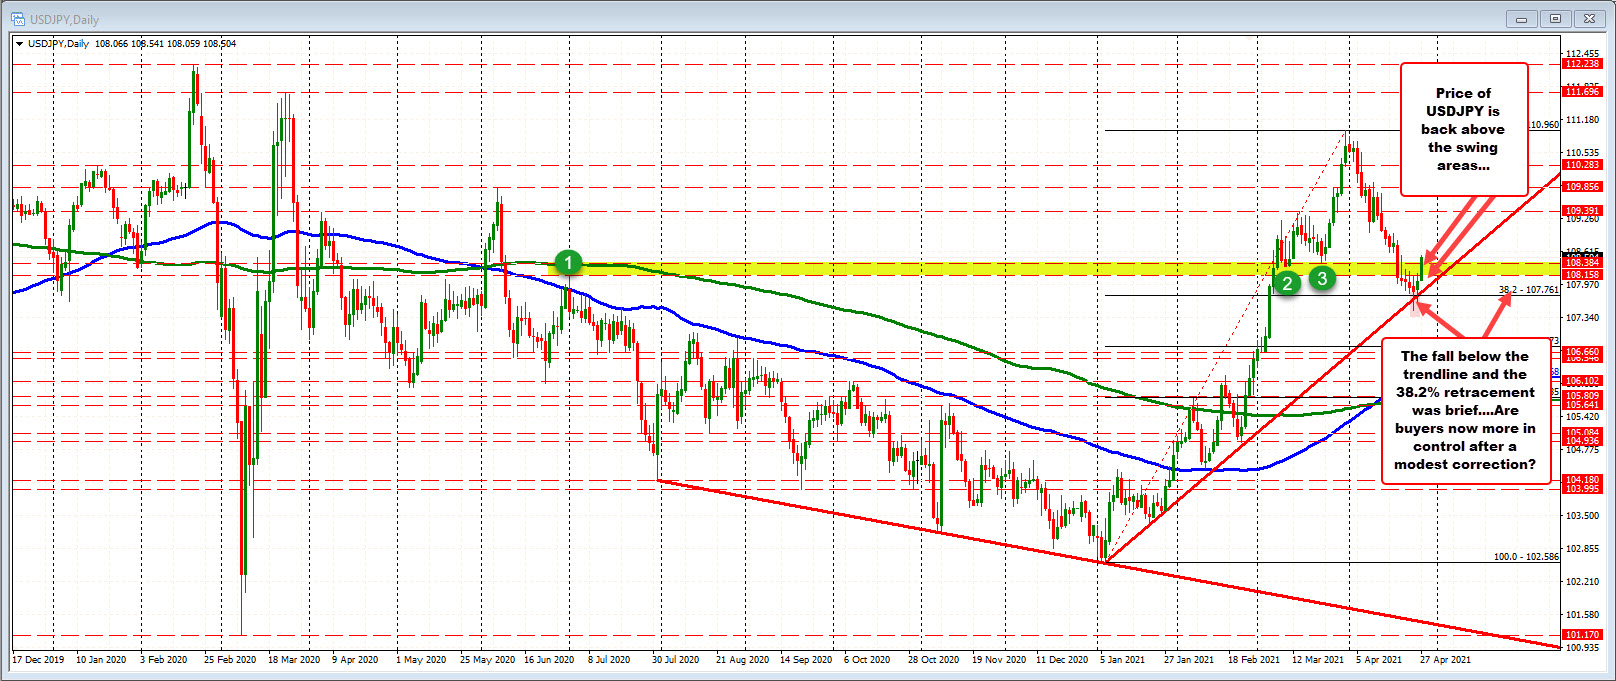 USDJPY on the daily chart.